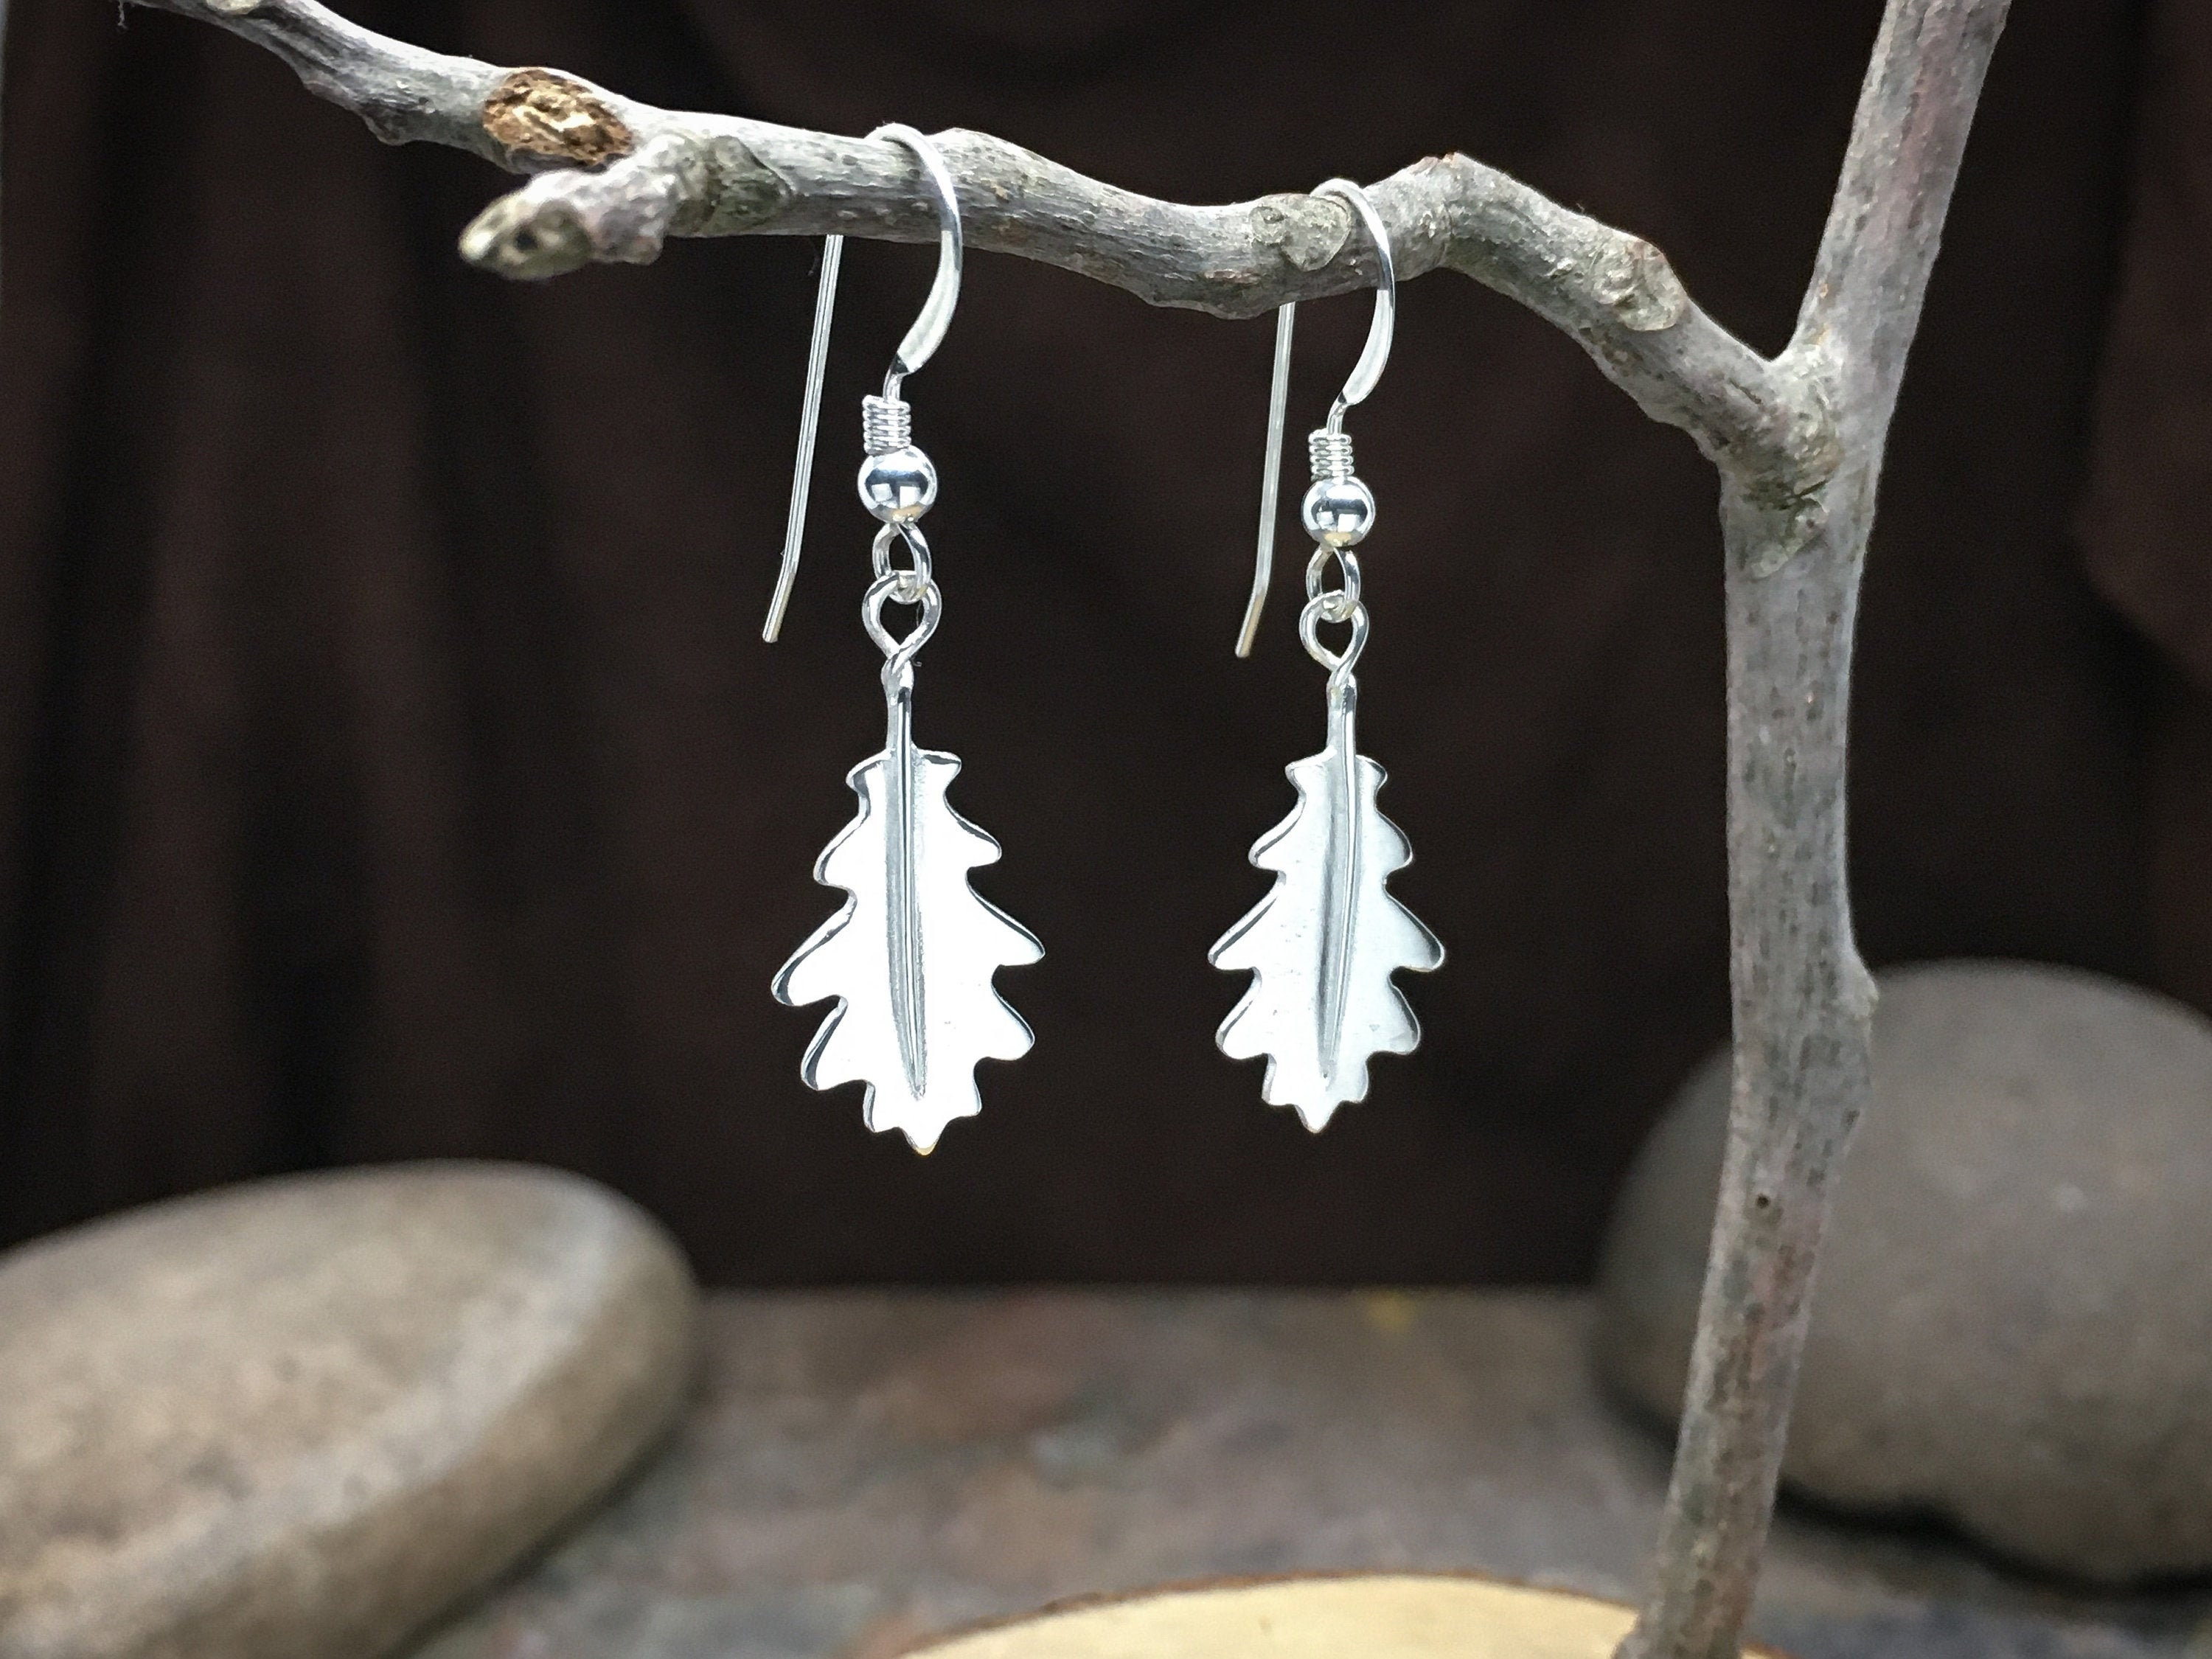 Oak Leaf Earrings in solid Sterling Silver - High end fine Jewelry for anniversary gifts, birthday gifts, wife gifts or gift for girlfriend!